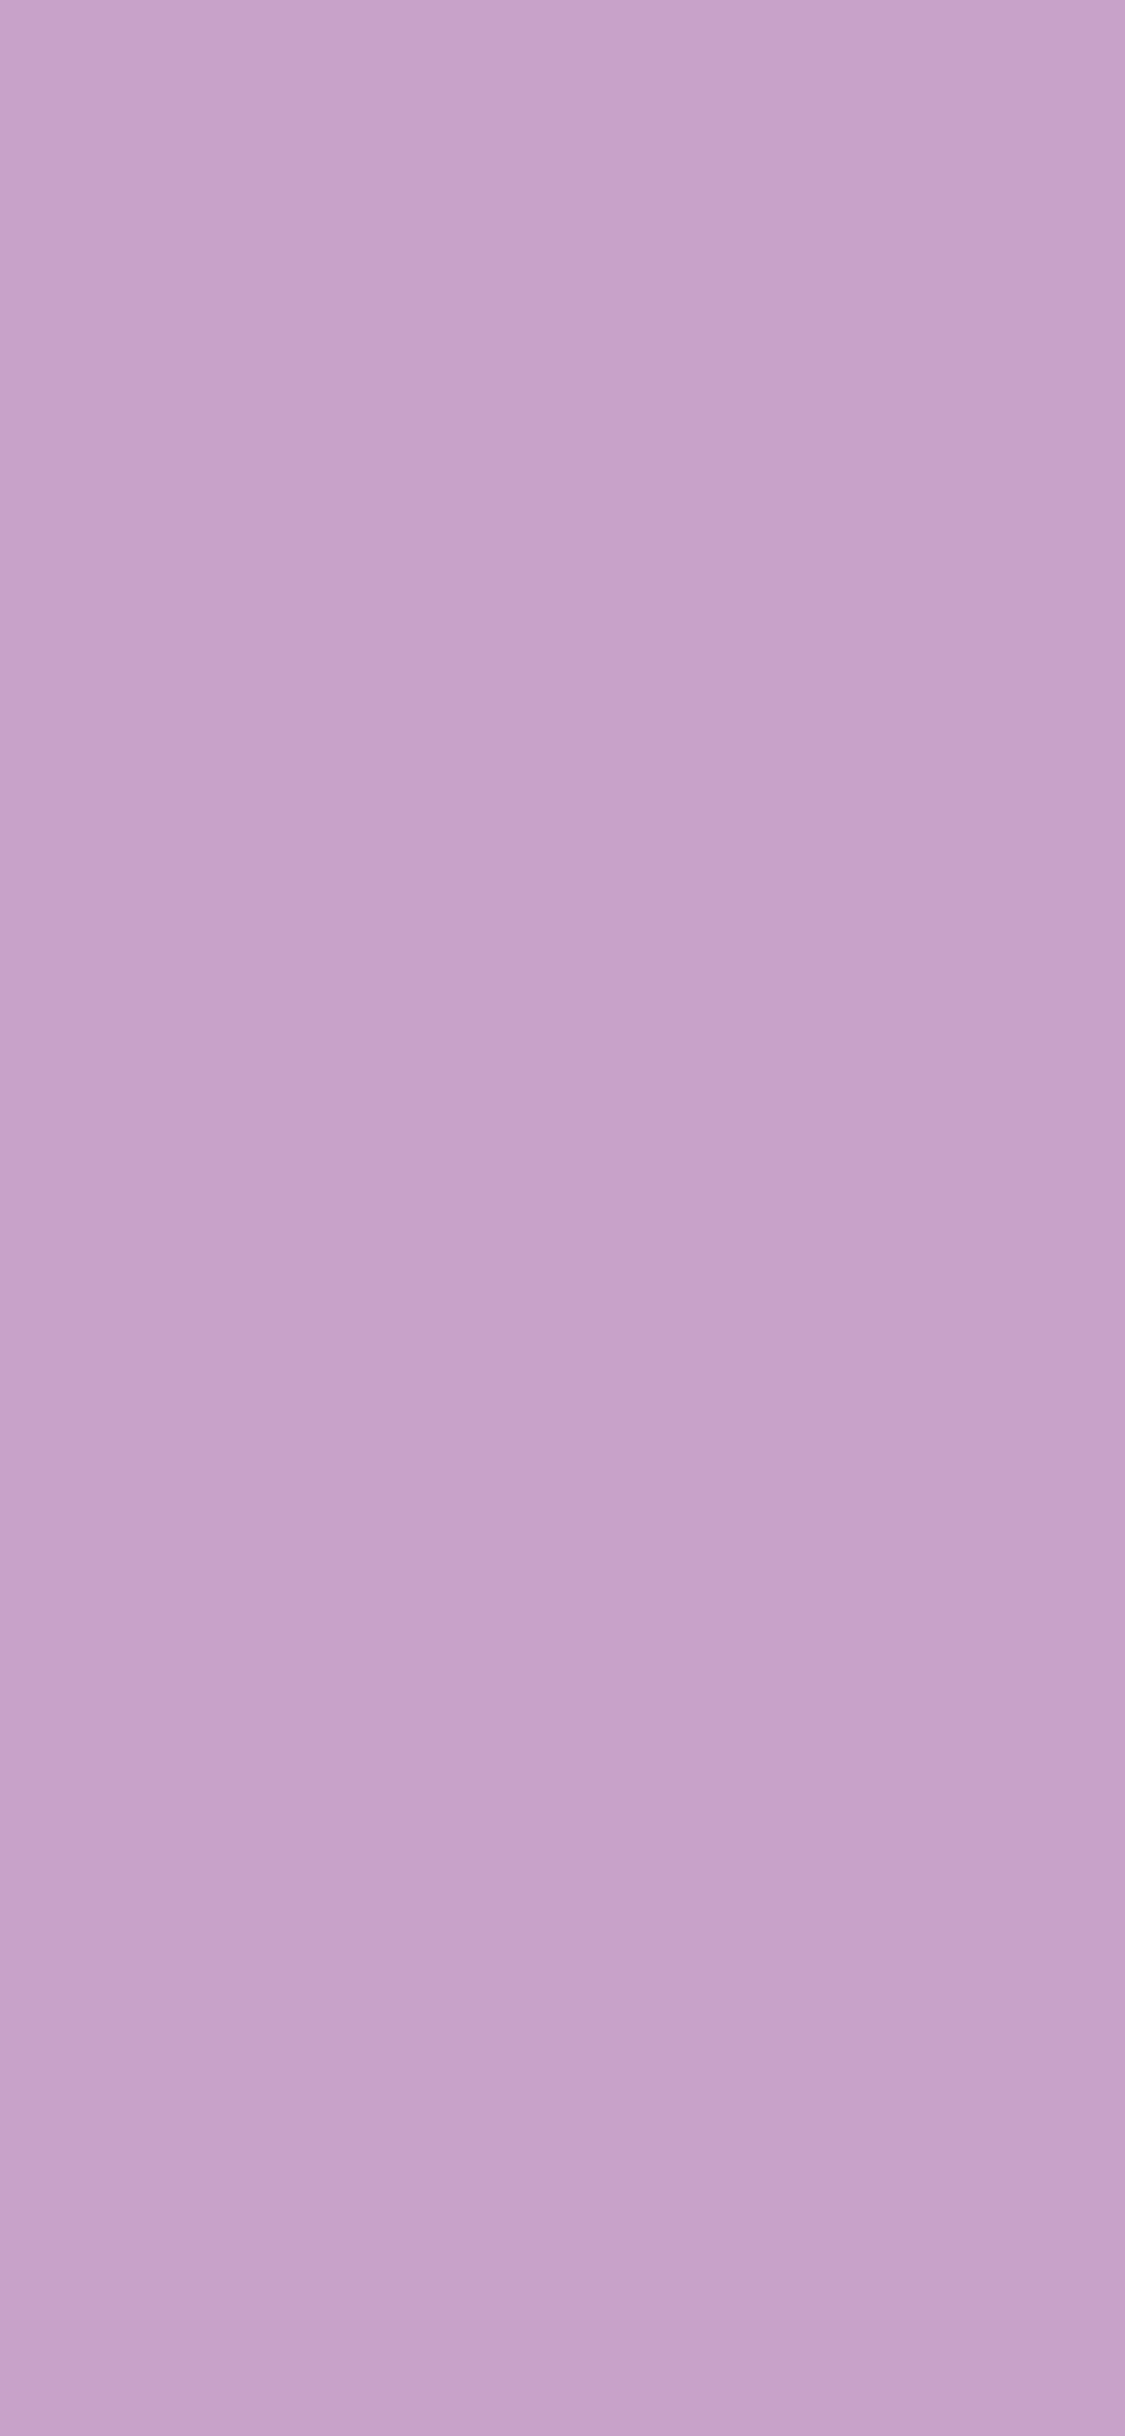 1125x2436 Lilac Solid Color Background